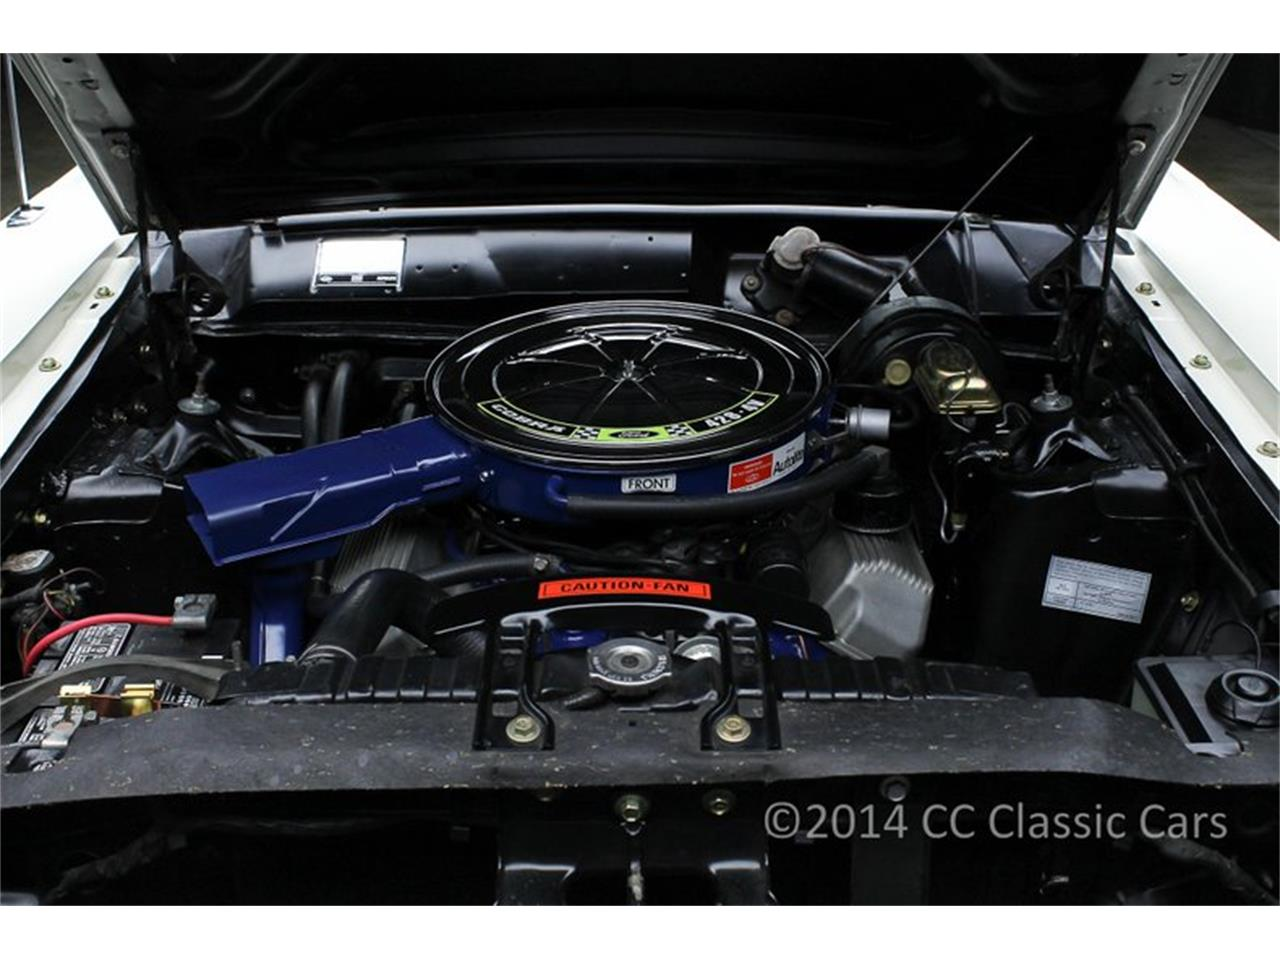 Large Picture of Classic '69 Ford Torino Offered by CC Classic Cars - HZ0H